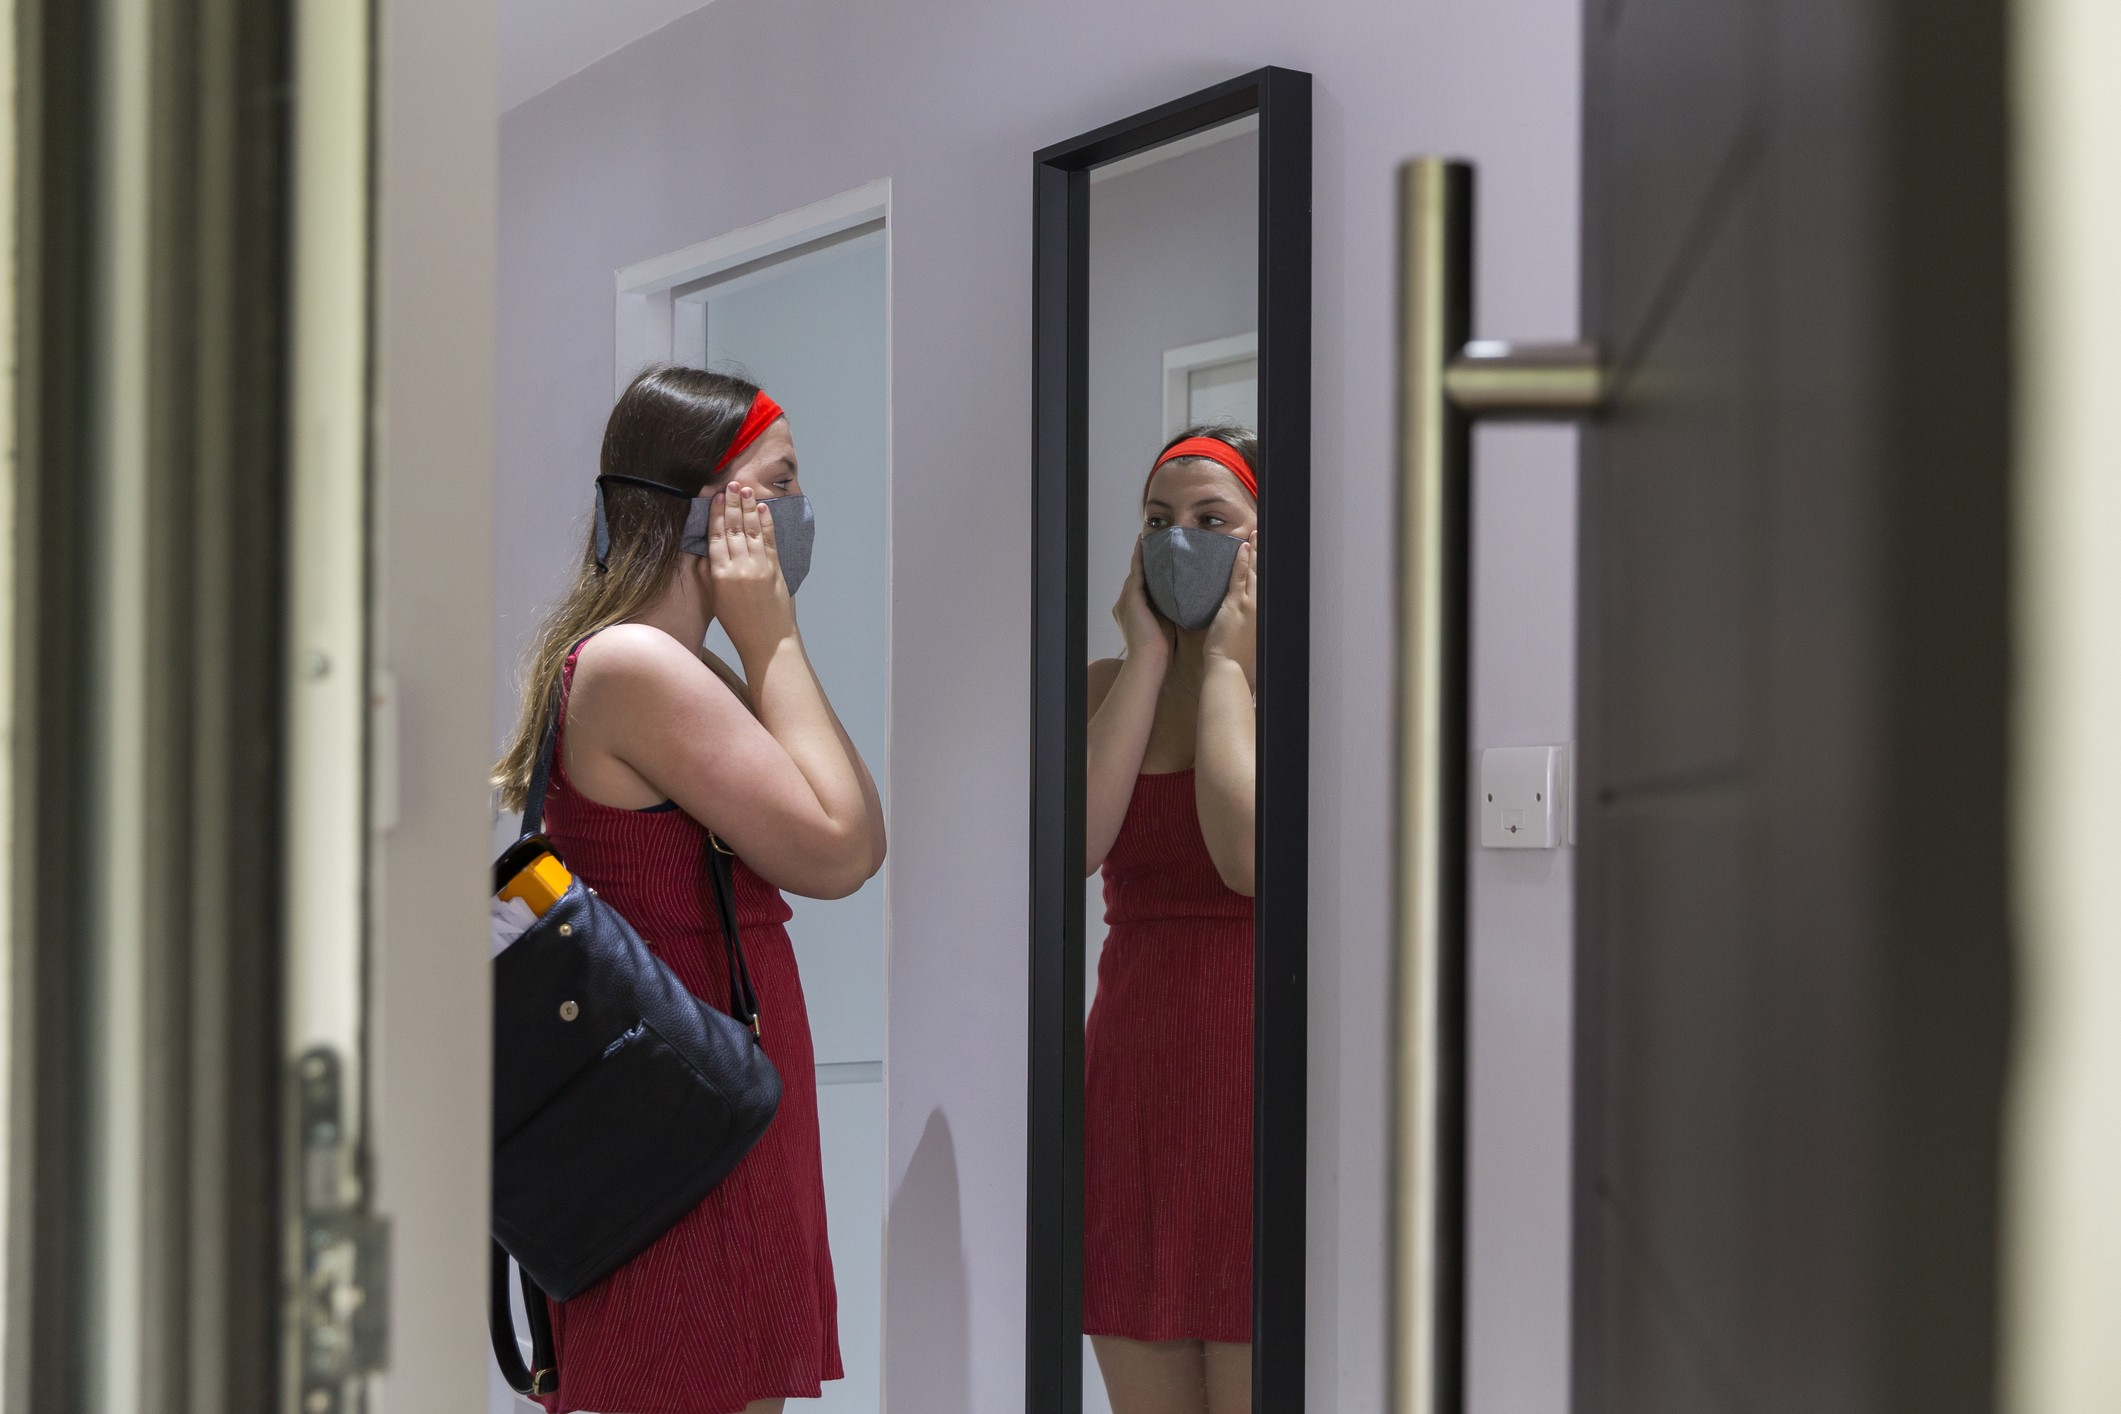 A photo of a girl putting on a face mask while preparing to go outside.